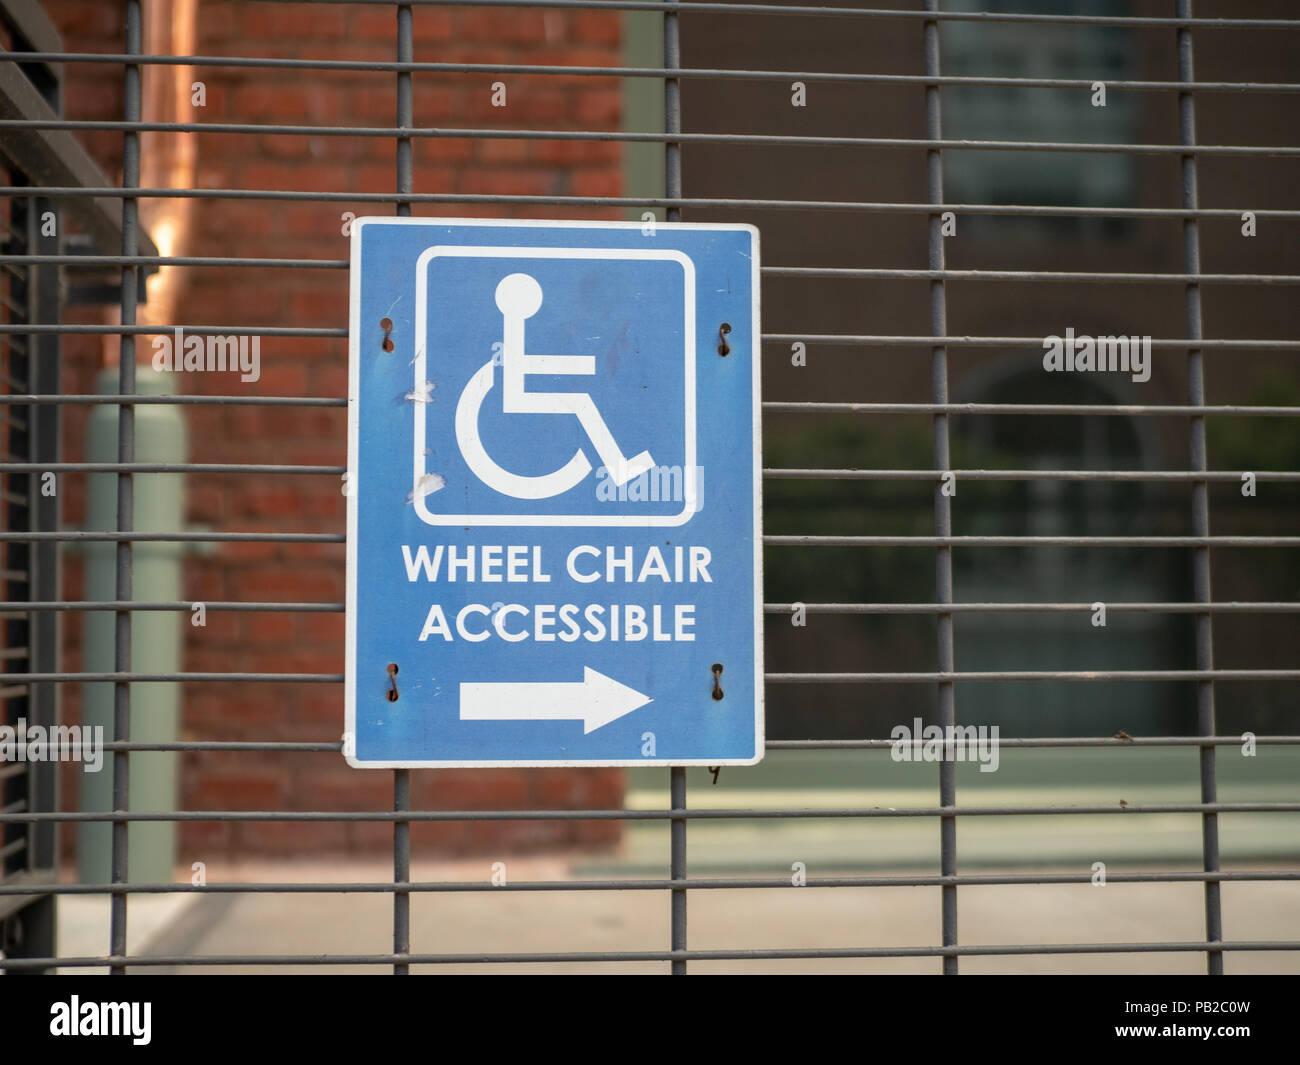 Wheel chair accessible sign pointing to the right outdoors positioned outdoors on wire railing - Stock Image